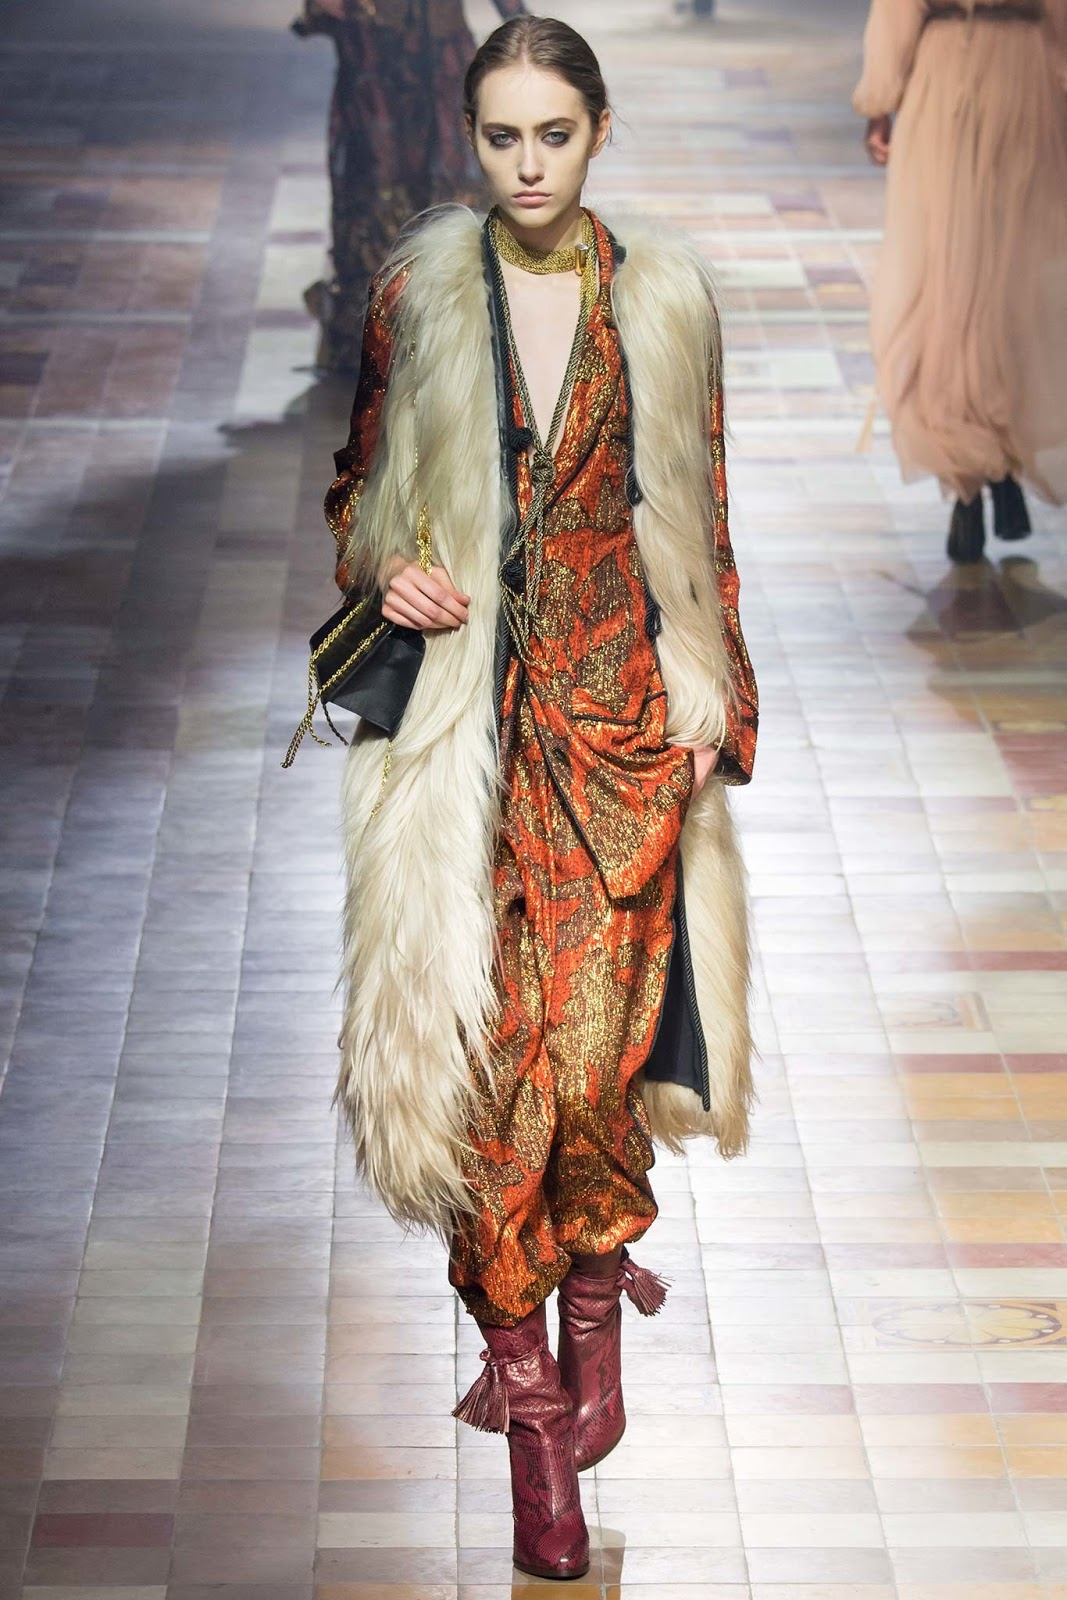 Brocade trend on AW 2015 runway at Lanvin / via www.fashionedbylove.co.uk